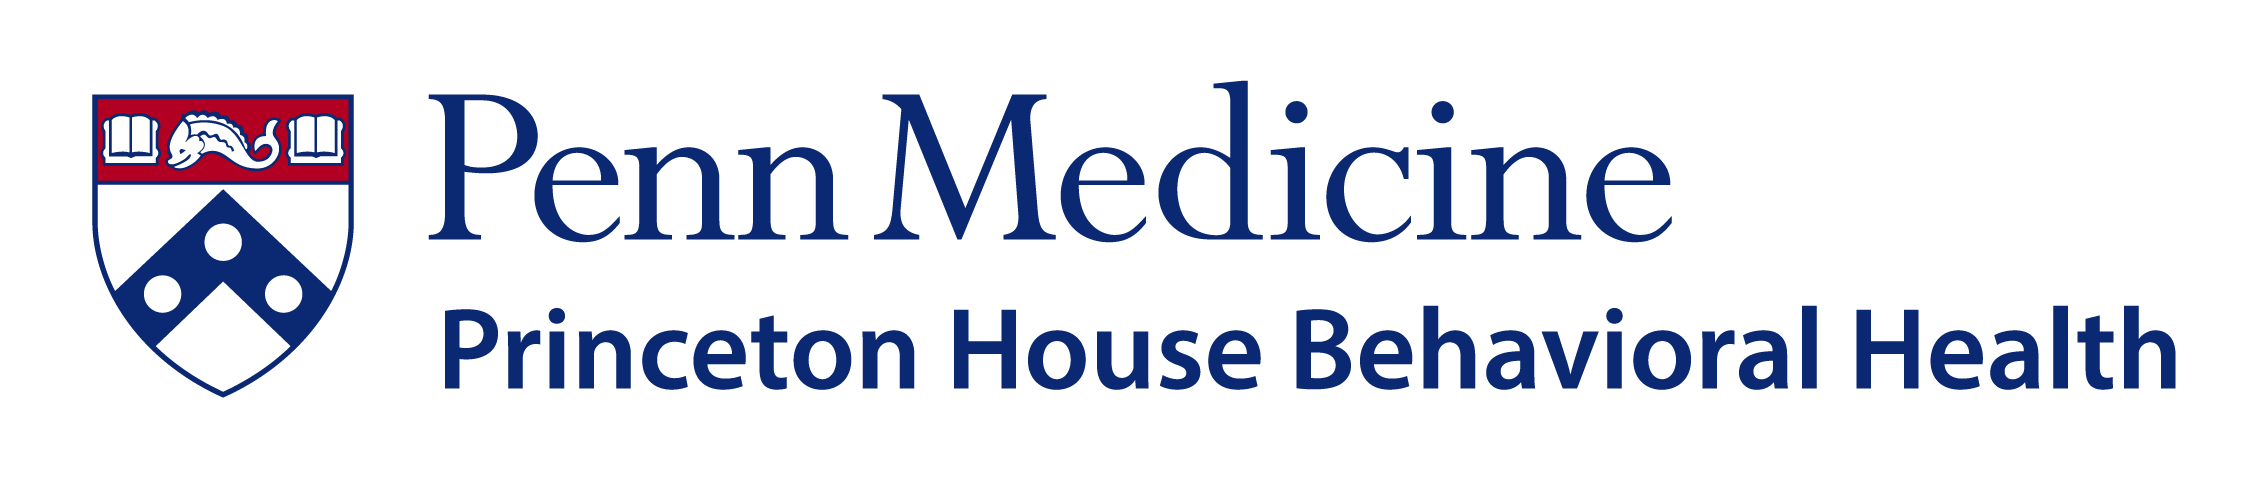 OUTPATIENT - Eatontown, NJ - Penn Medicine Princeton House Behavioral Health